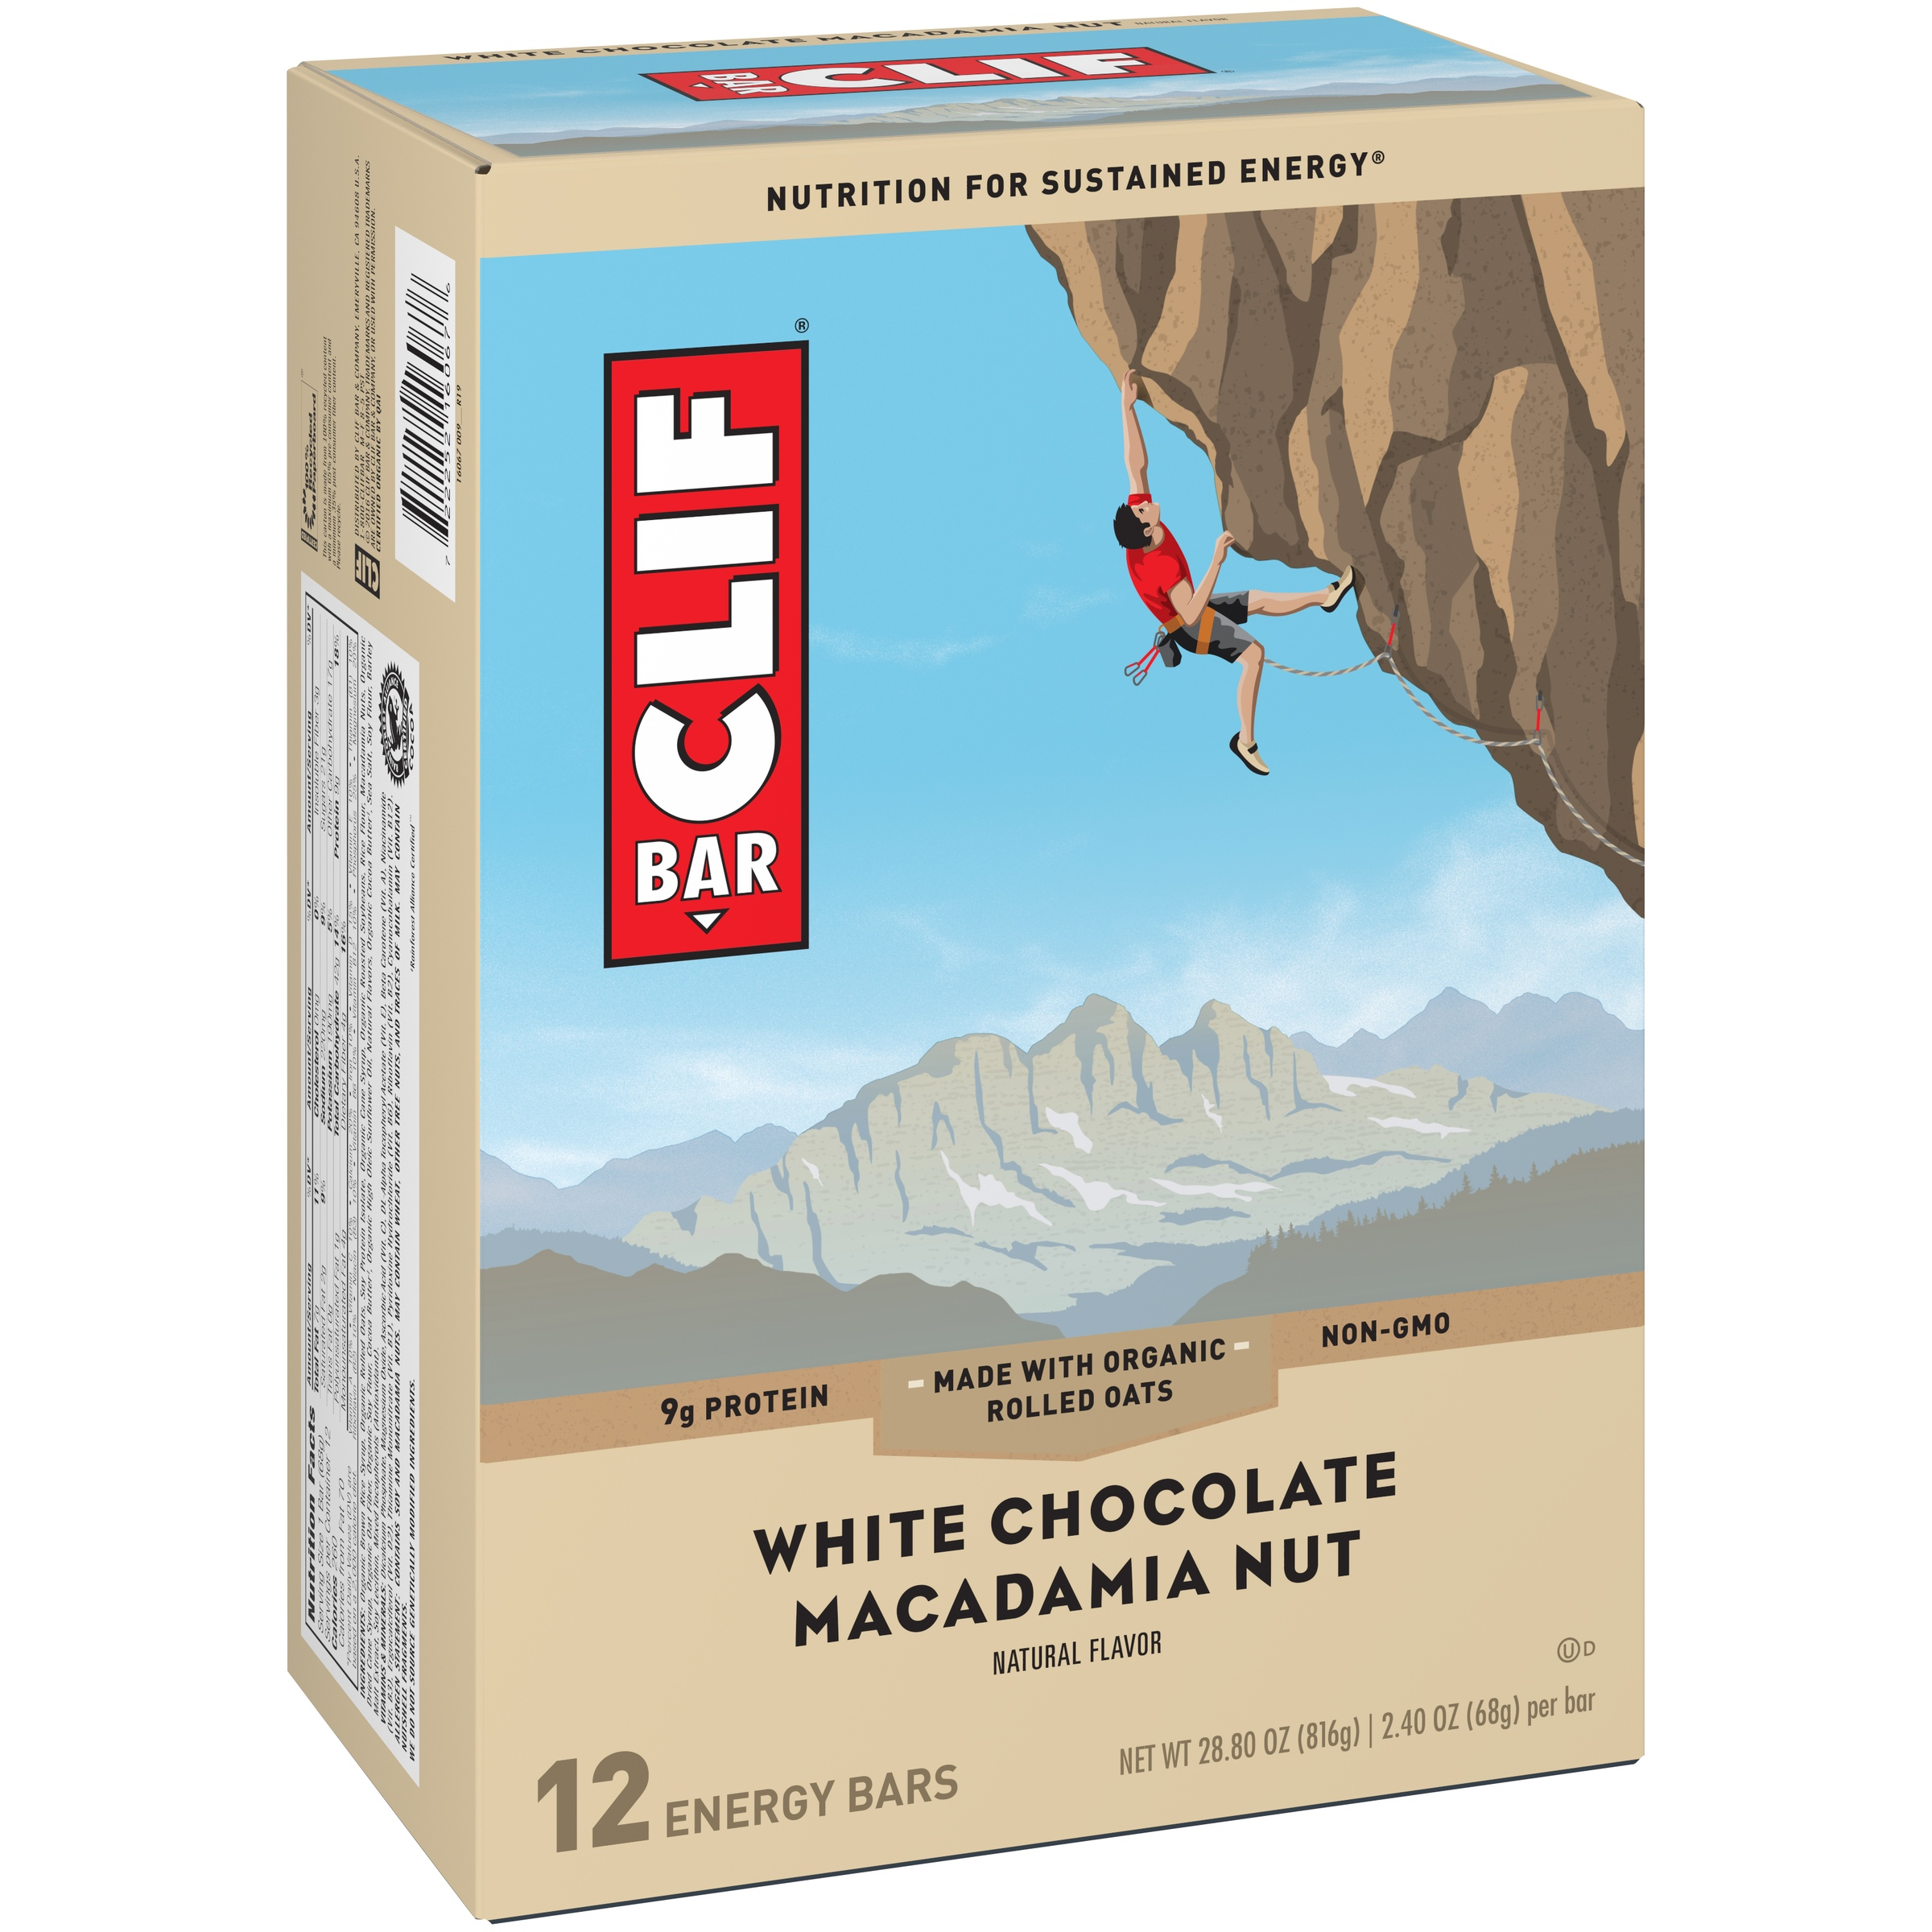 Clif Energy Bar, White Chocolate Macadamia Nut, 9g Protein, 12 Ct